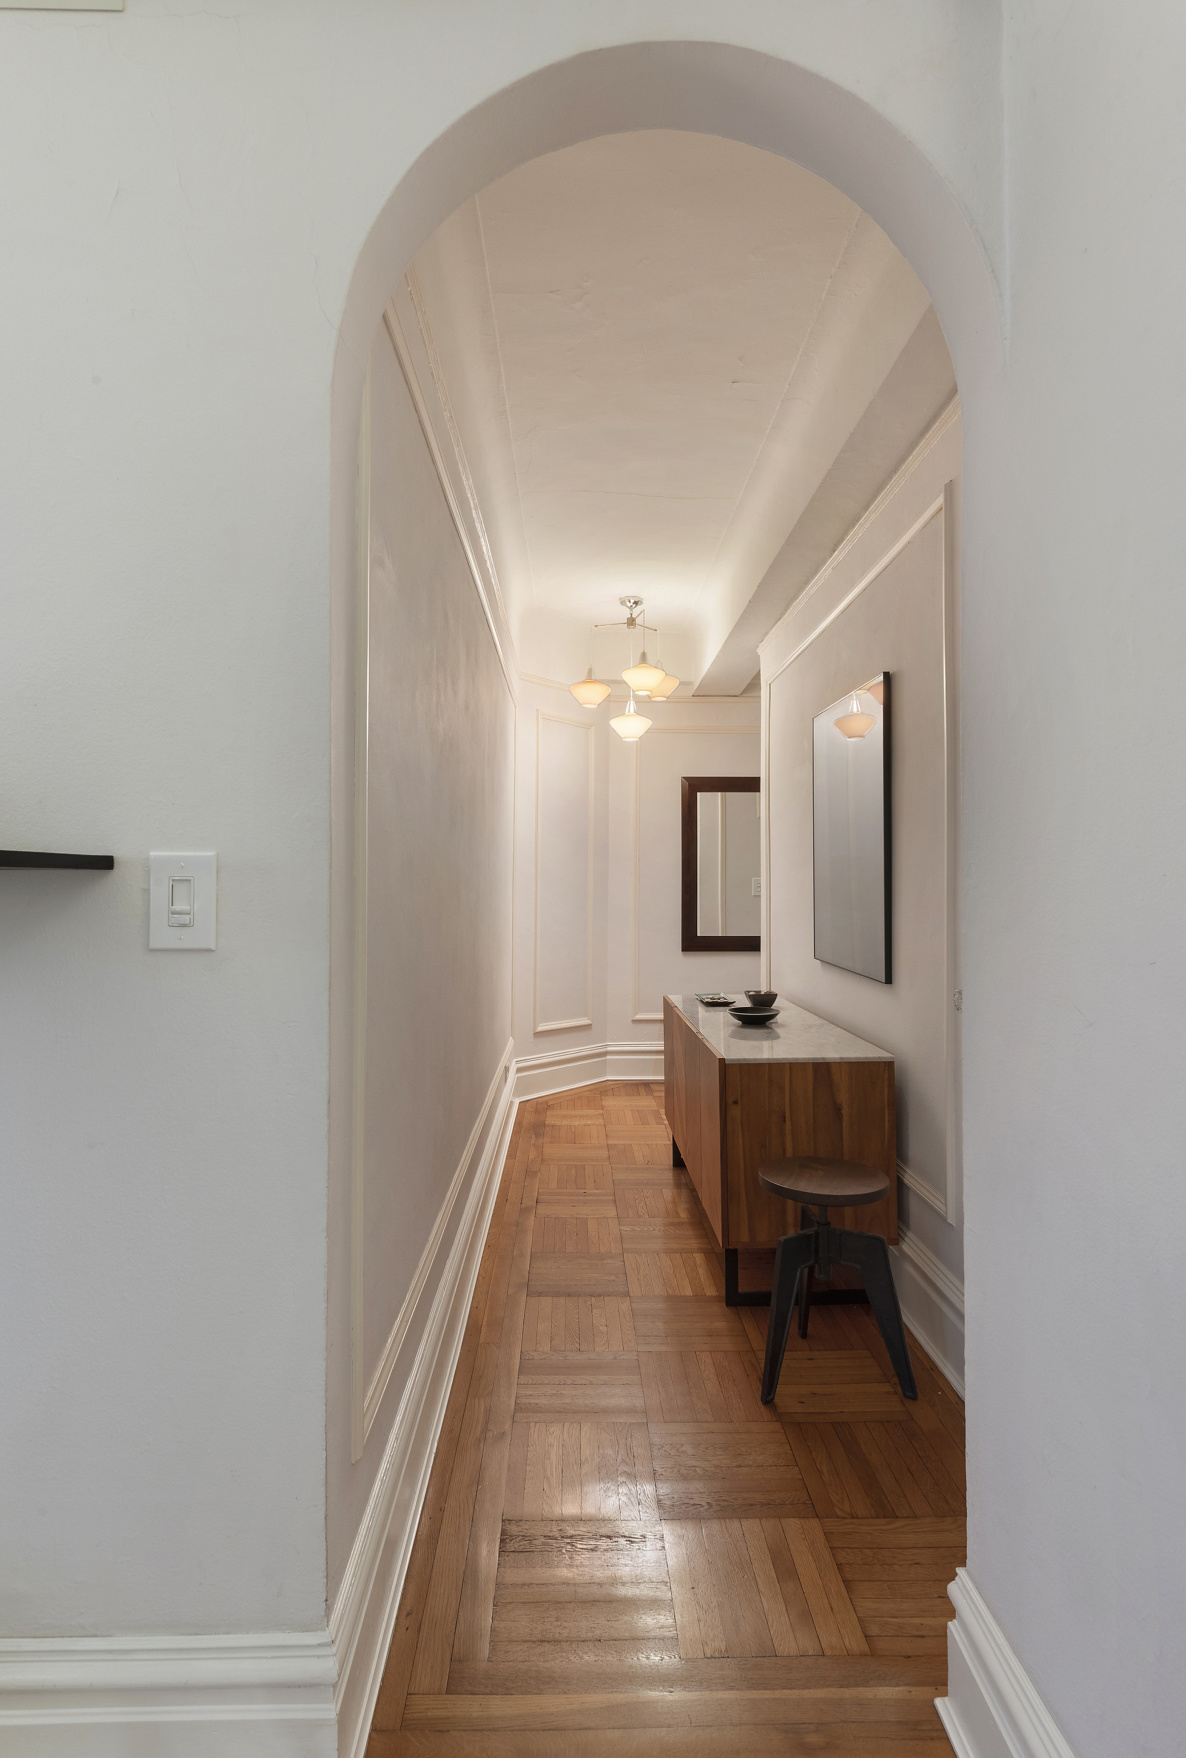 Apartment for sale at 467 Central Park West, Apt 4-F